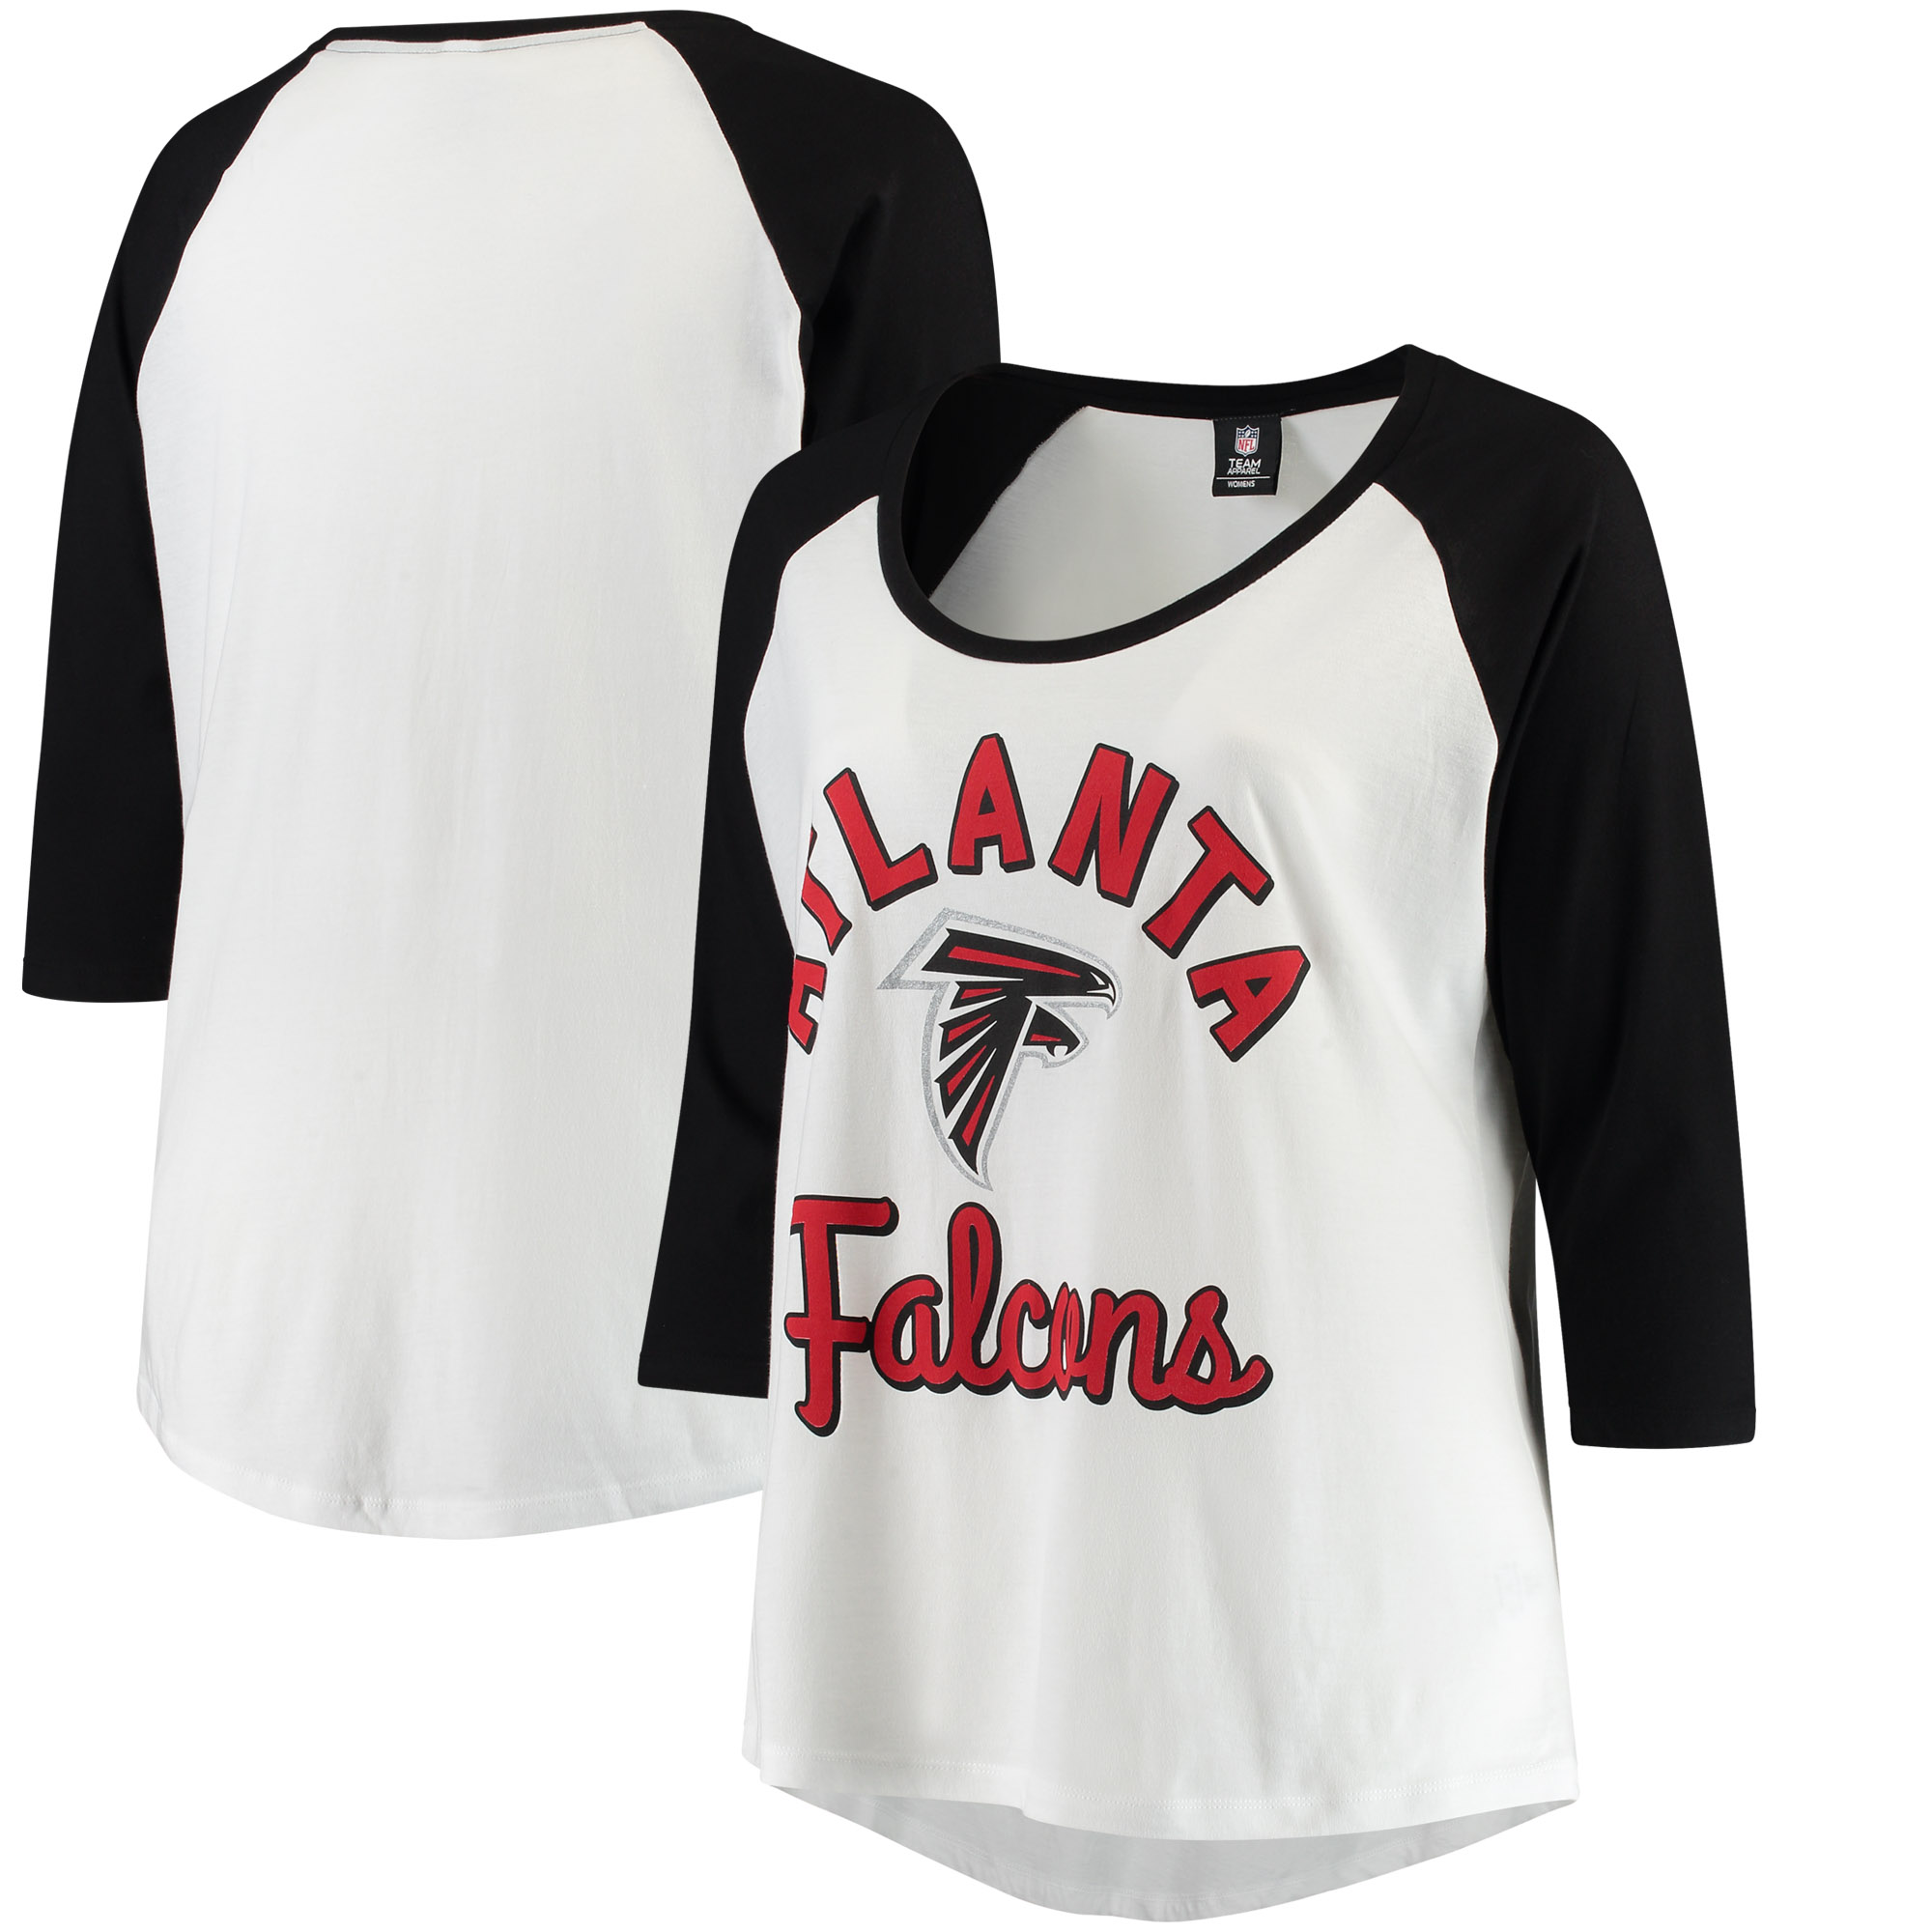 Atlanta Falcons 5th & Ocean by New Era Women's Plus Size 3/4-Sleeve Raglan T-Shirt - White/Black